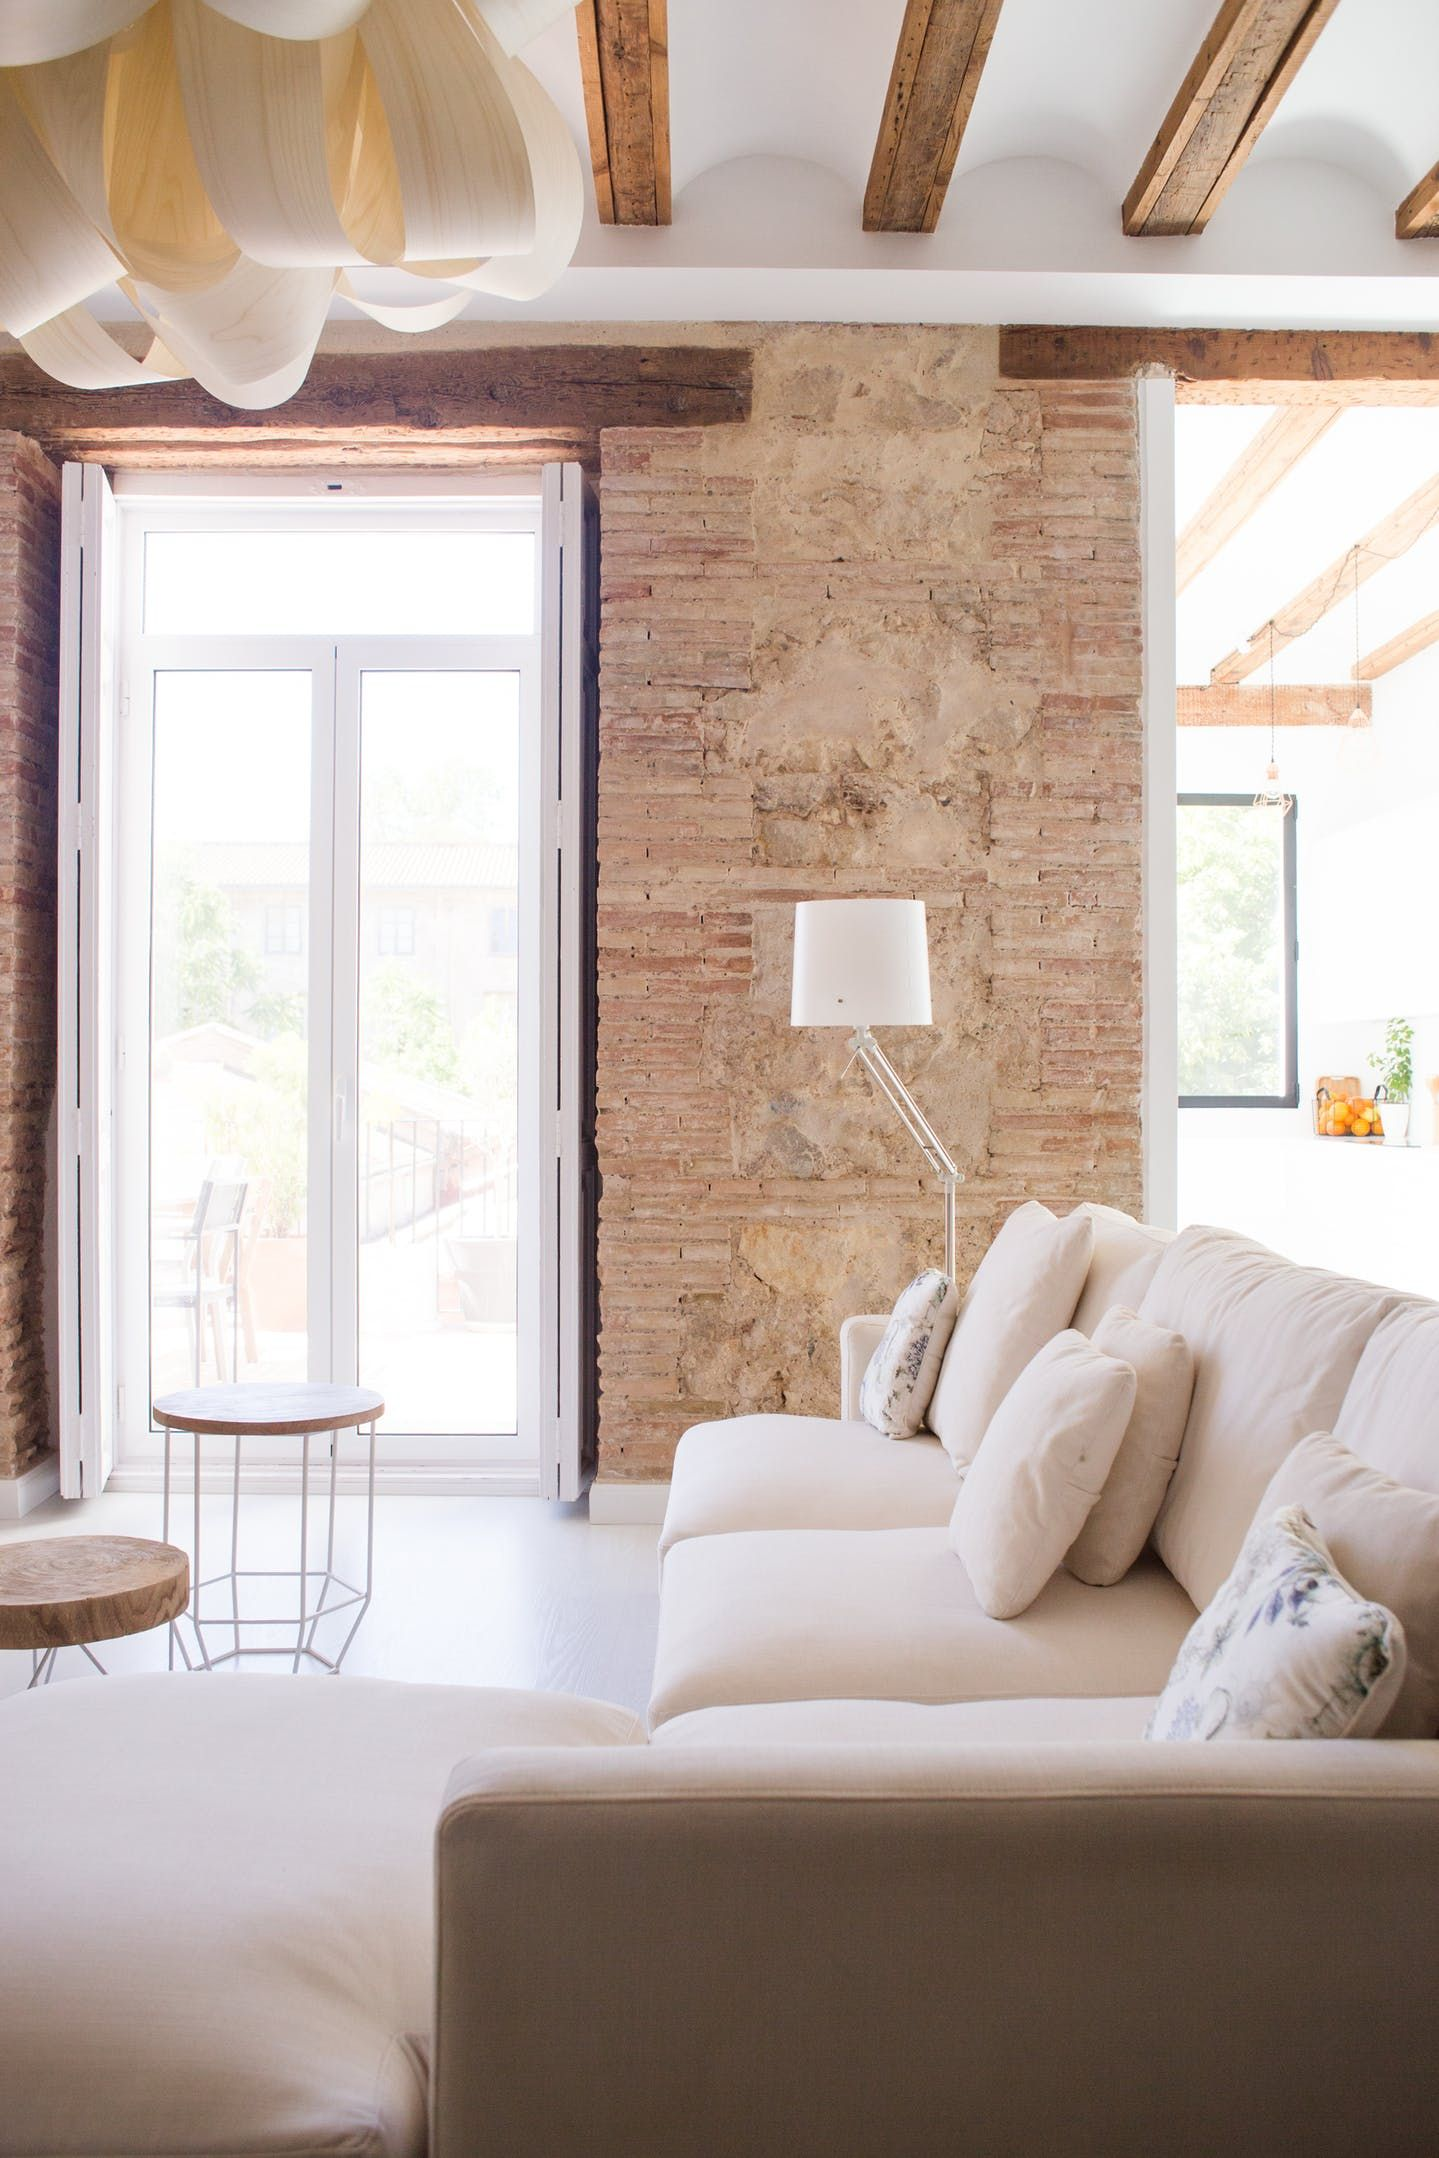 3 Home Decor Trends For Spring Brittany Stager: A RENOVATED SPANISH HOME WITH A STUNNING TILE FLOOR